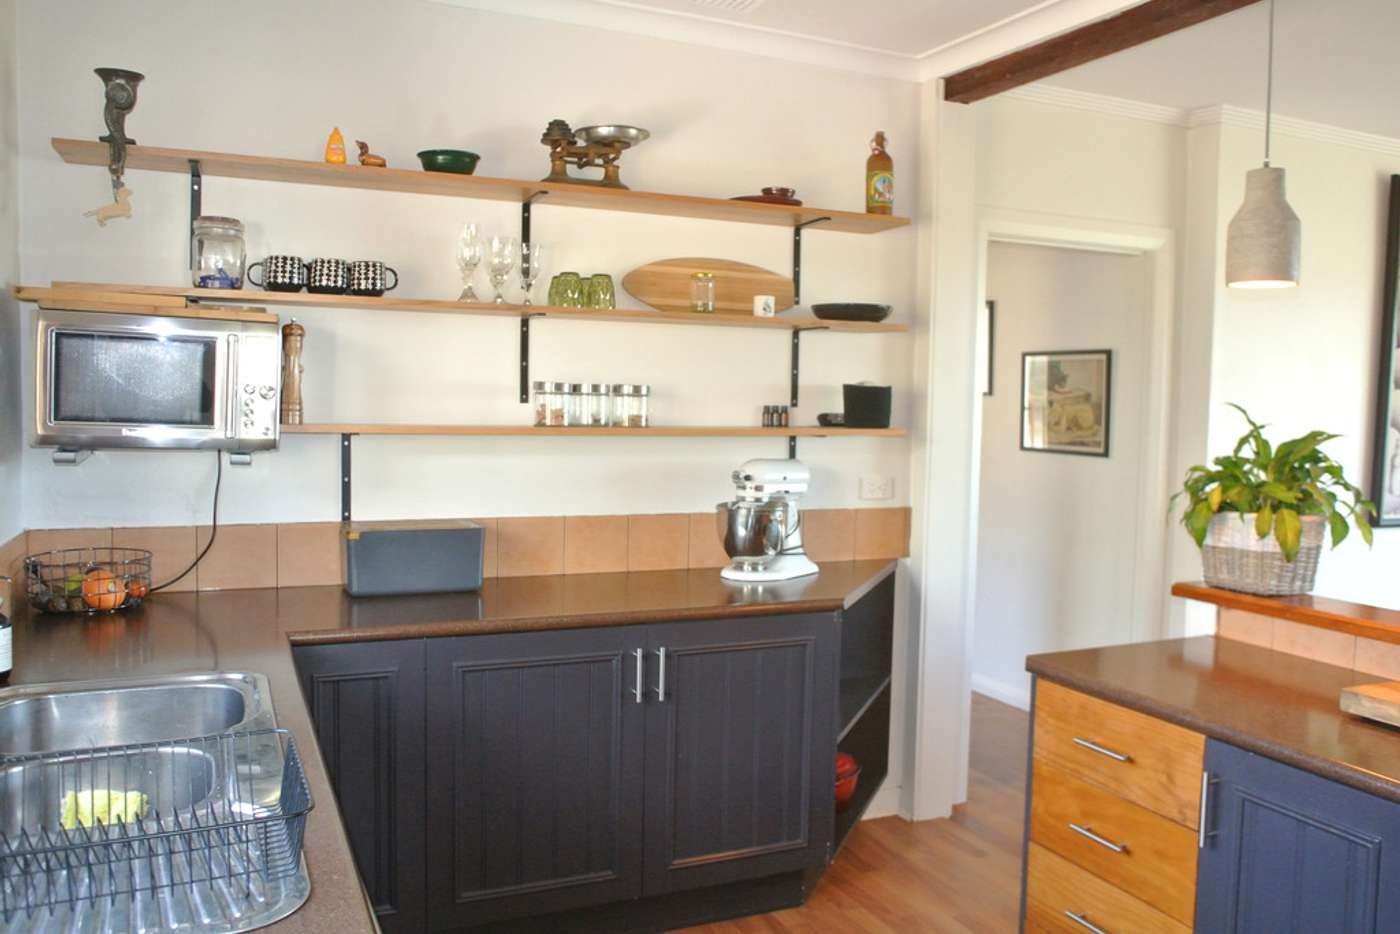 Main view of Homely house listing, 13 Wattle Avenue, Emu Heights TAS 7320